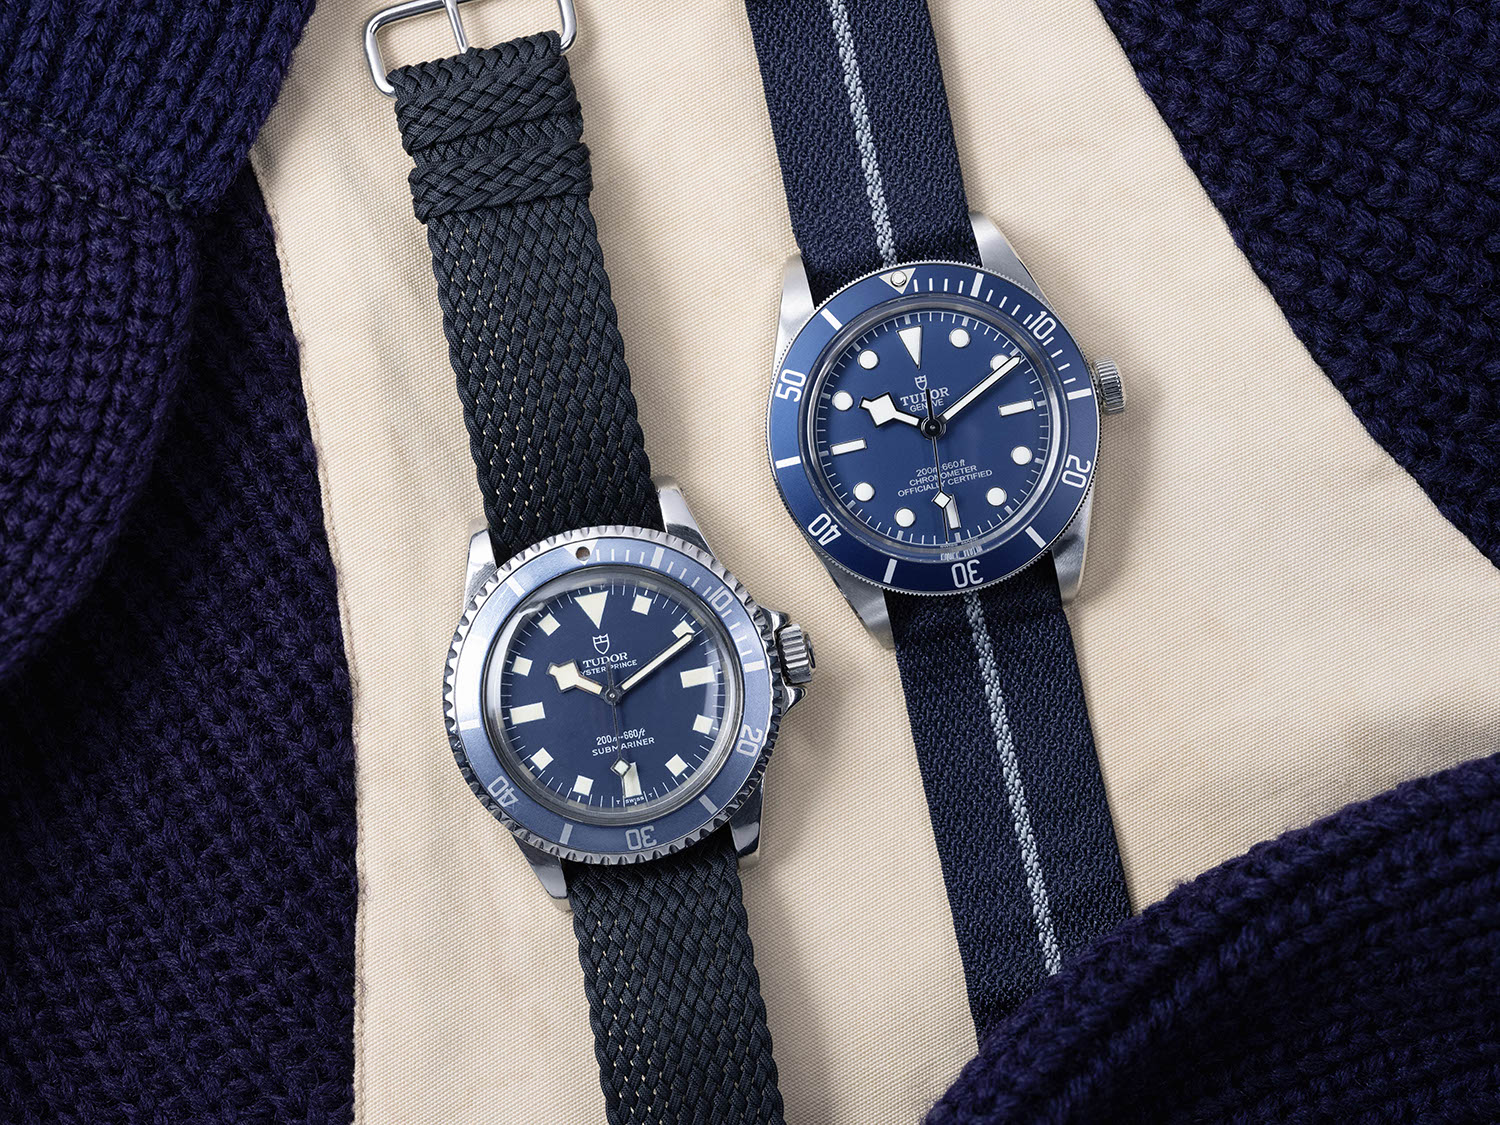 The Tudor BB58 Navy Blue seen with it's direct ancestor, the 1969 Tudor Prince Oyster Submariner ref. 7016